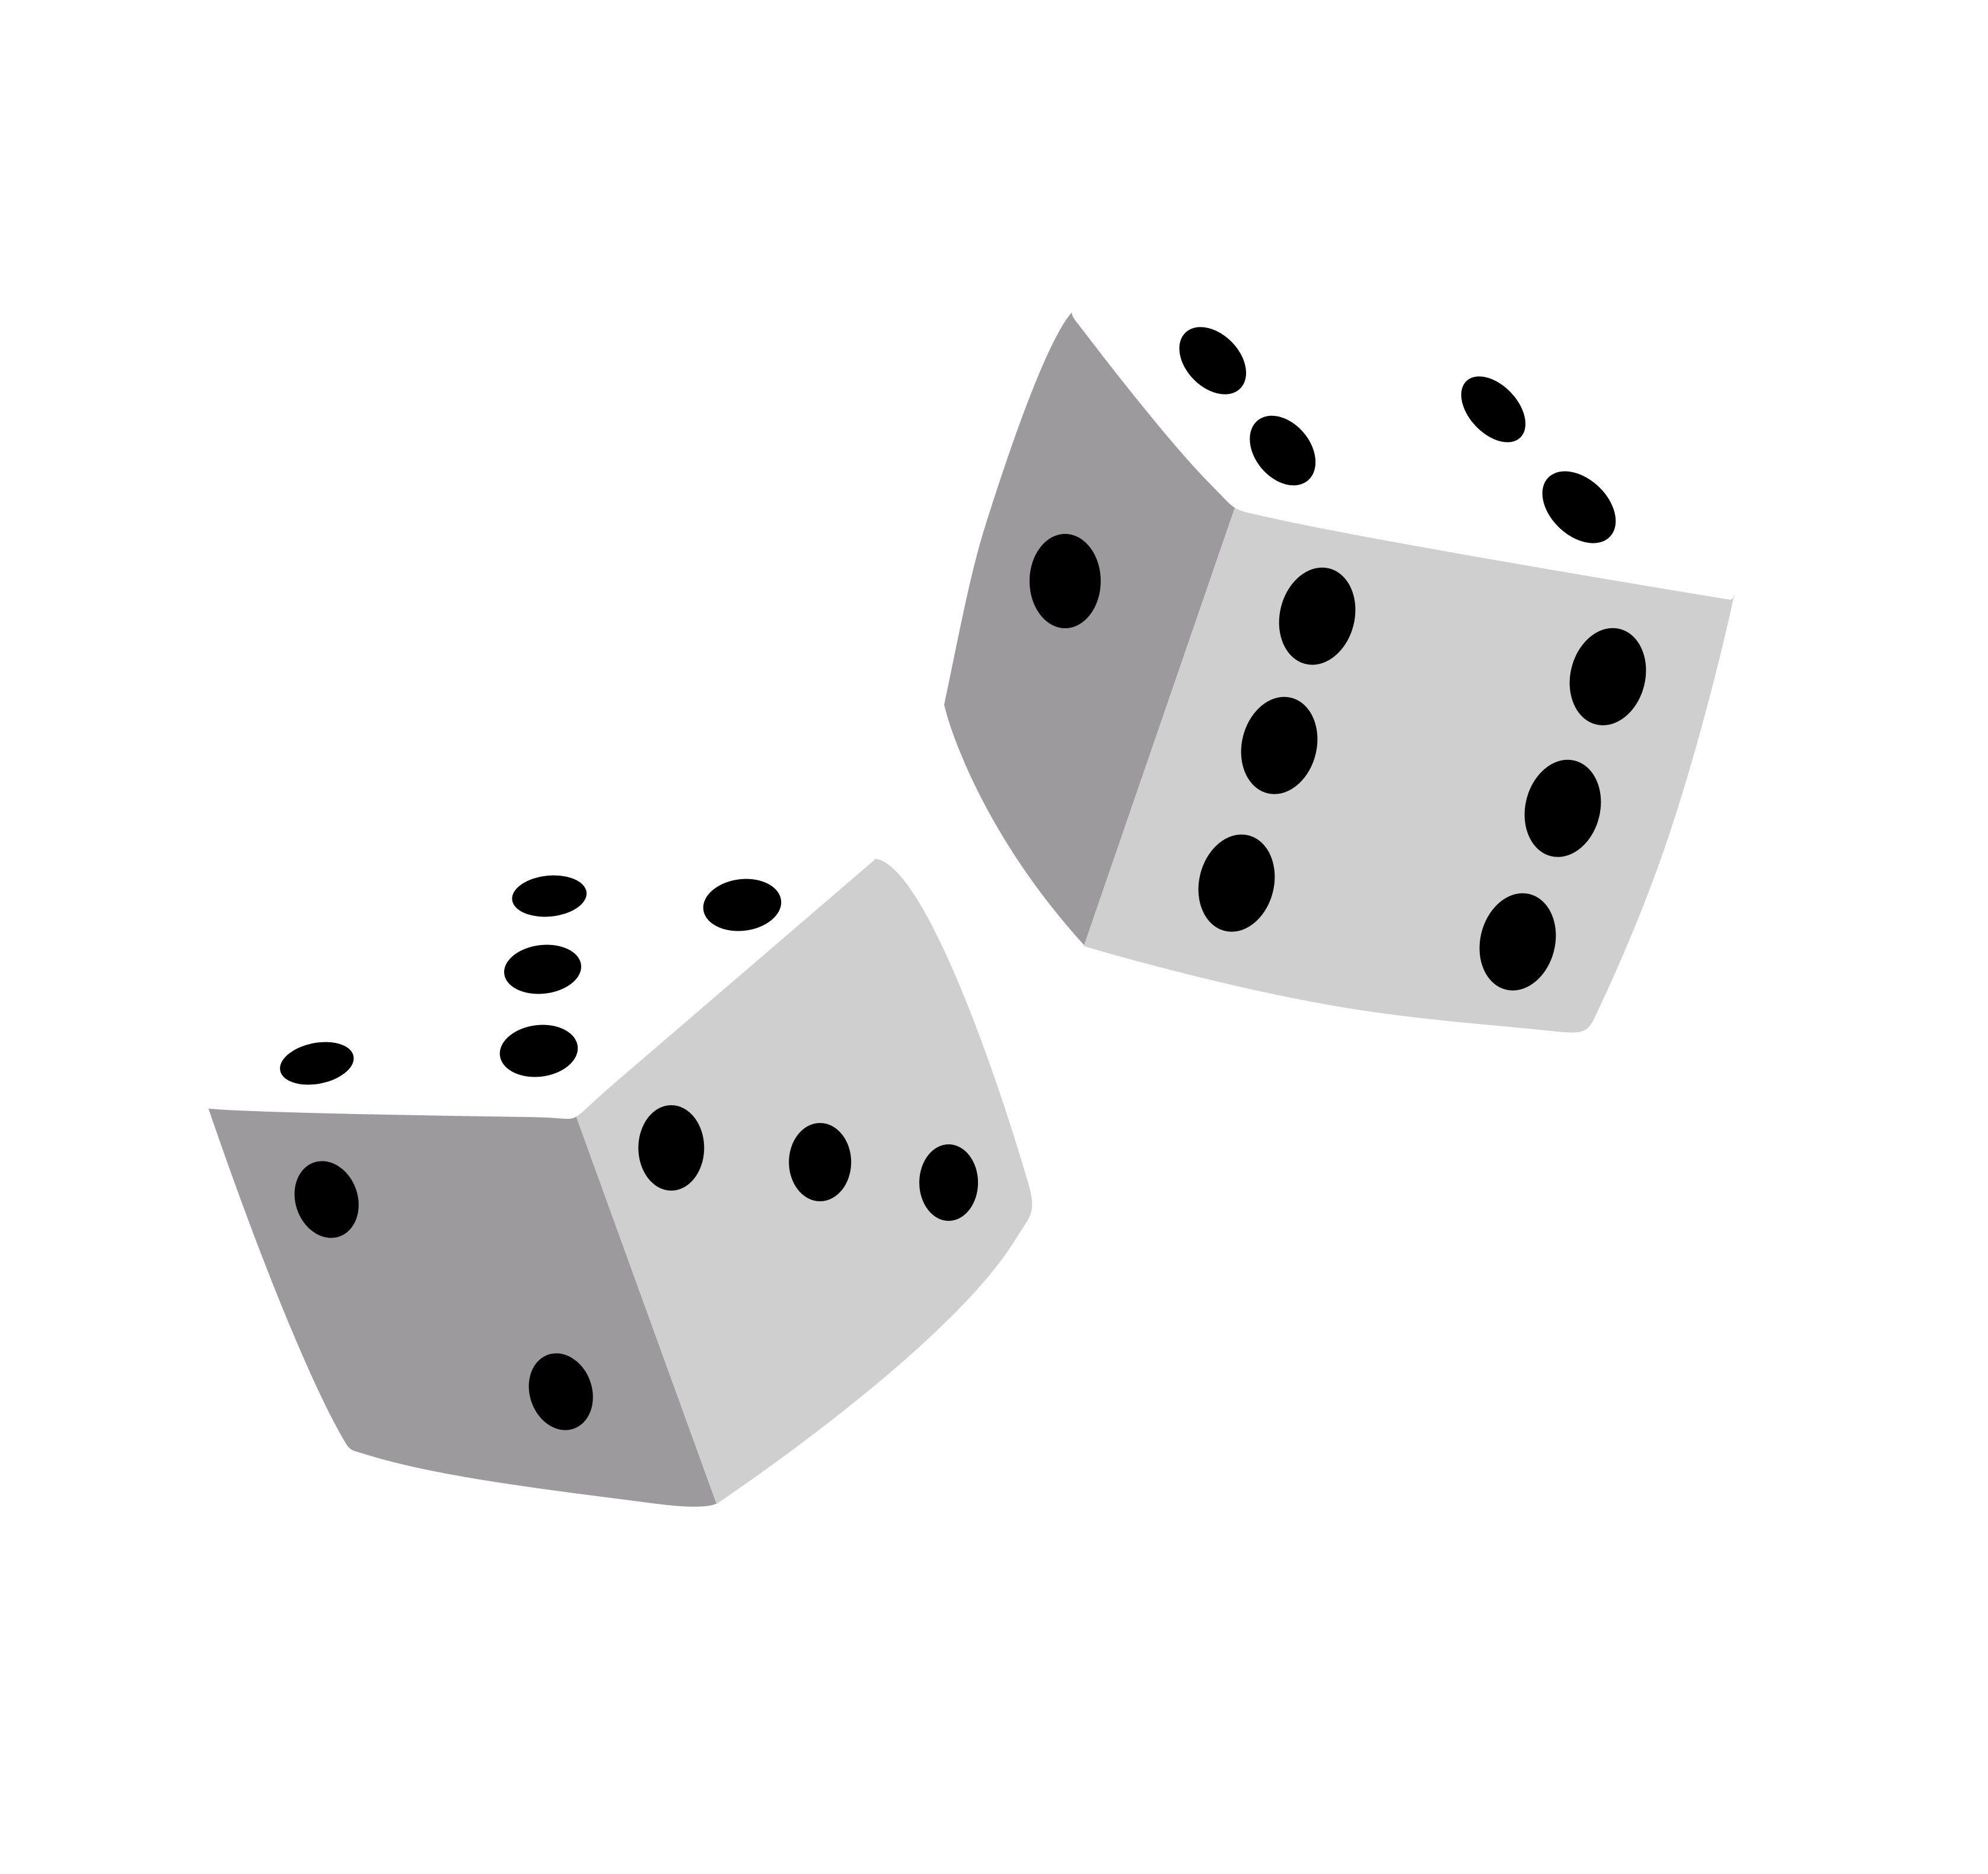 dice designs png icons and png backgrounds #30503